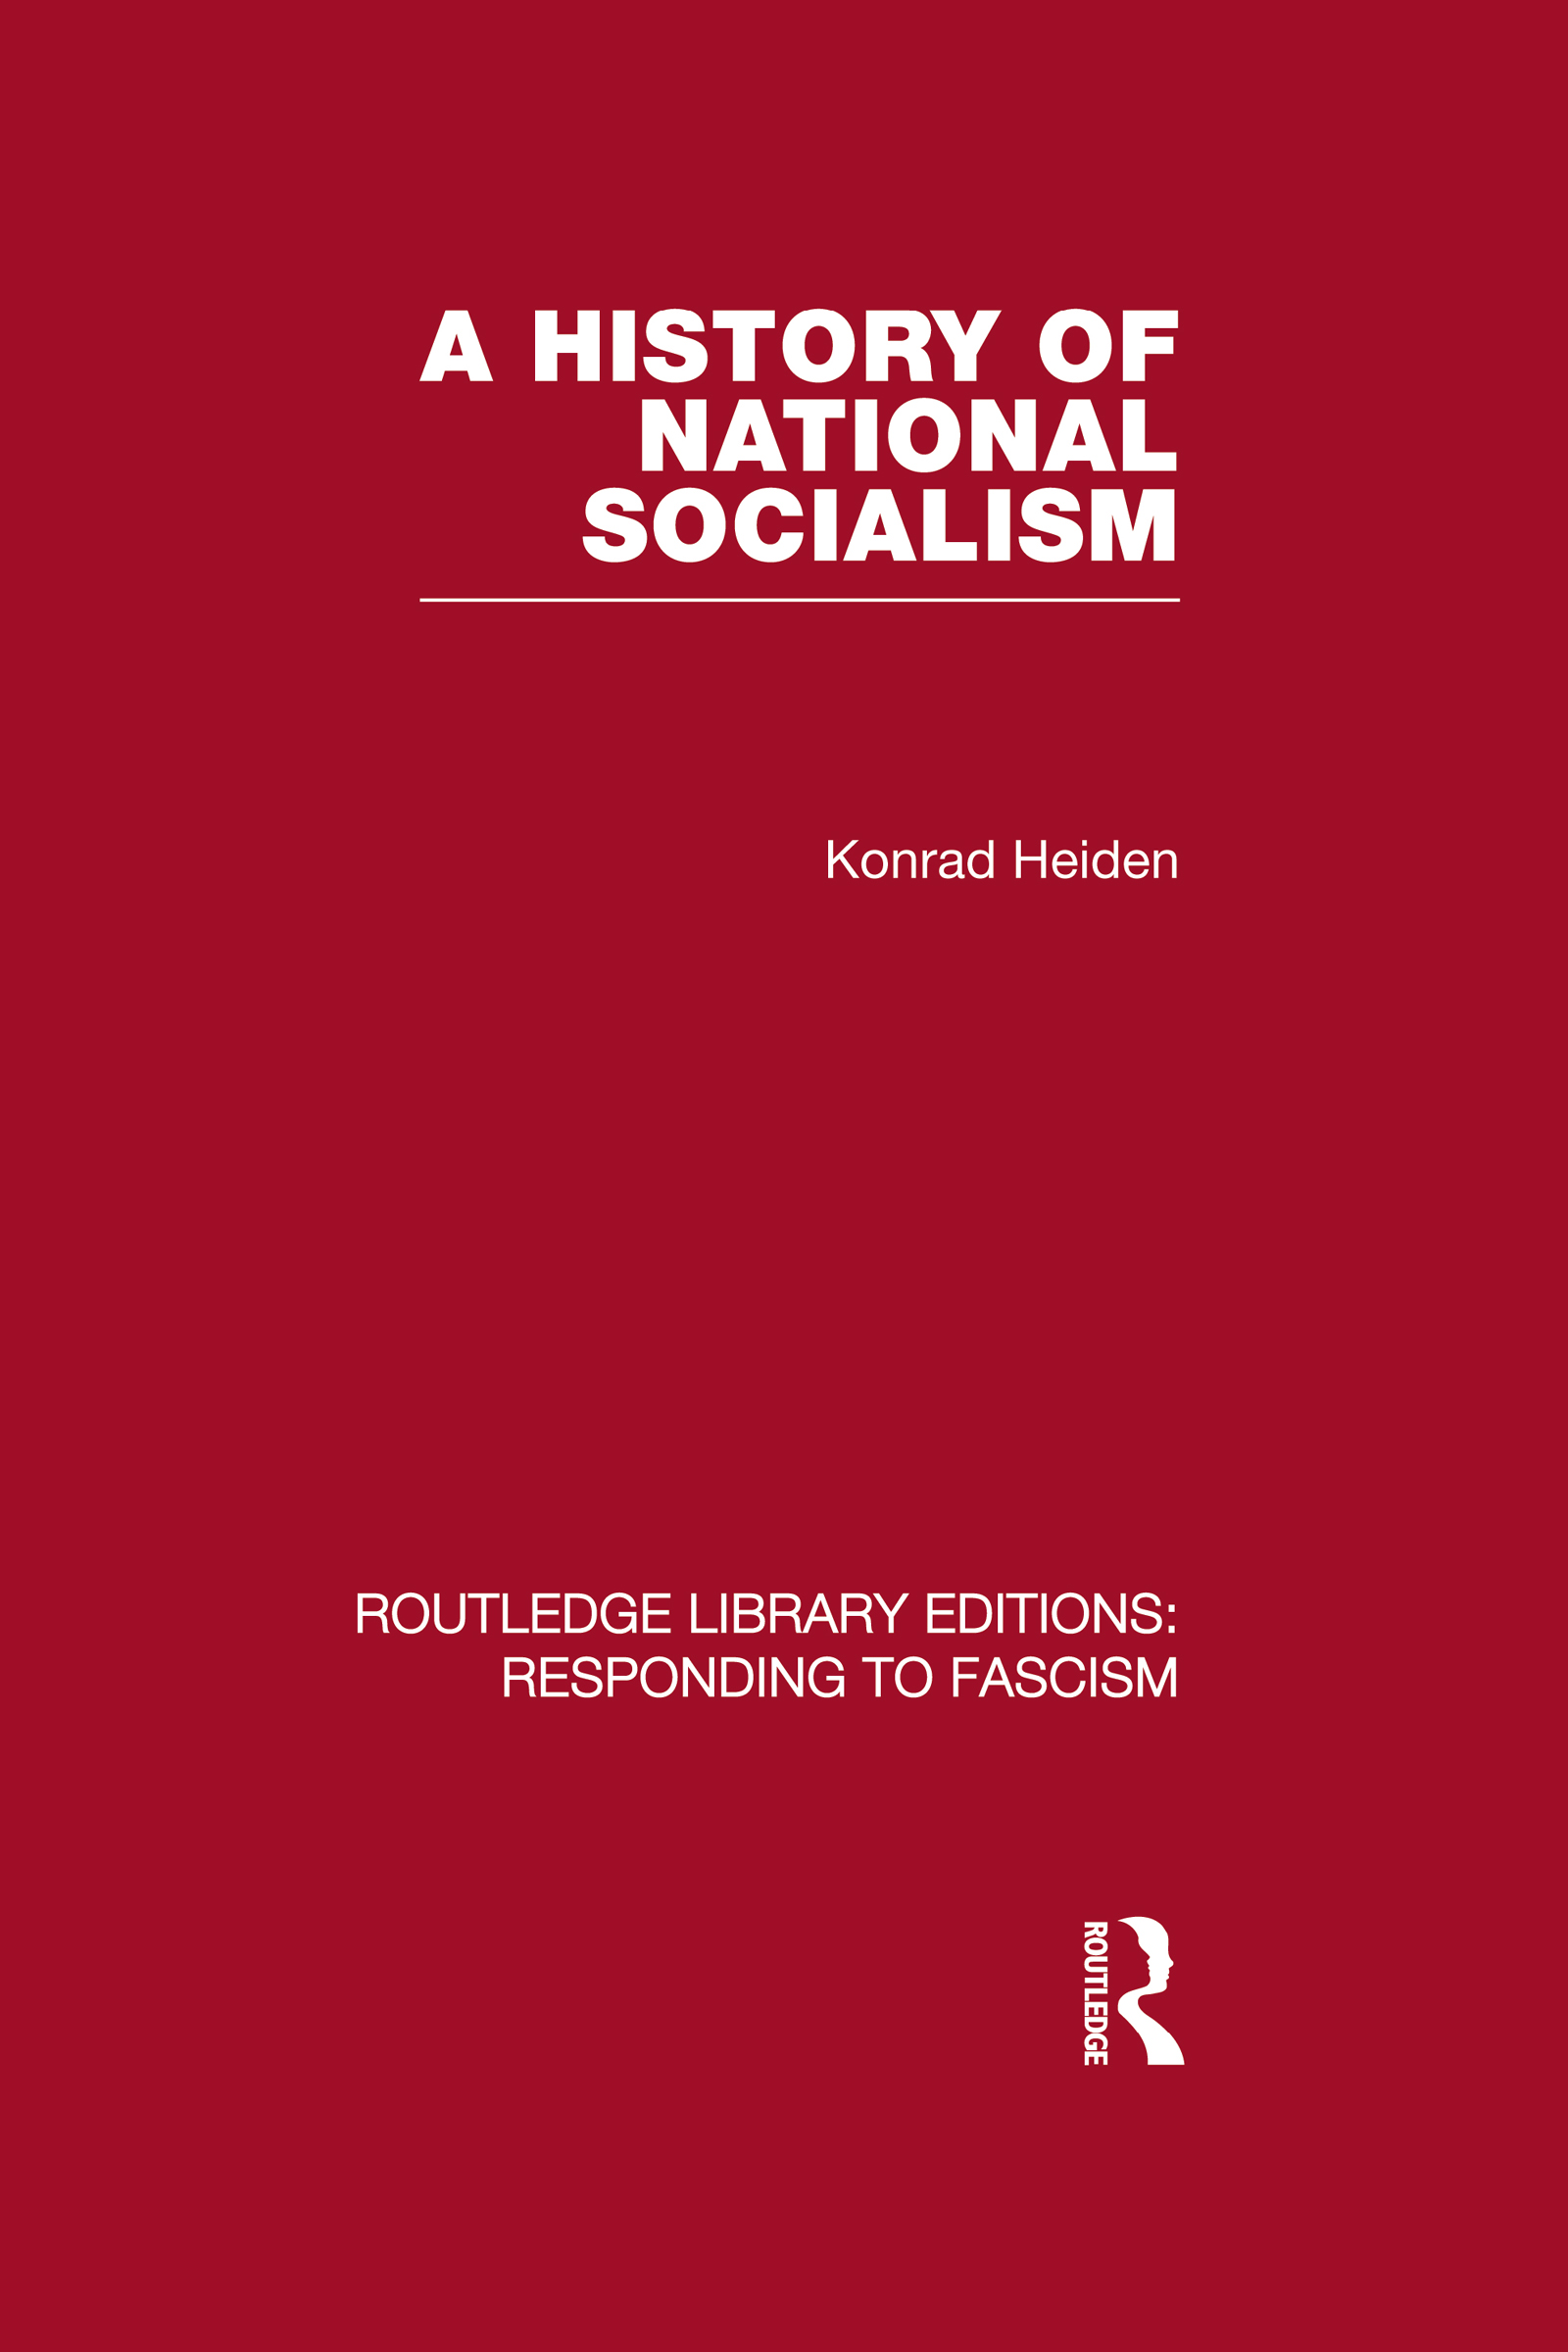 A History of National Socialism (RLE Responding to Fascism) (Hardback) book cover